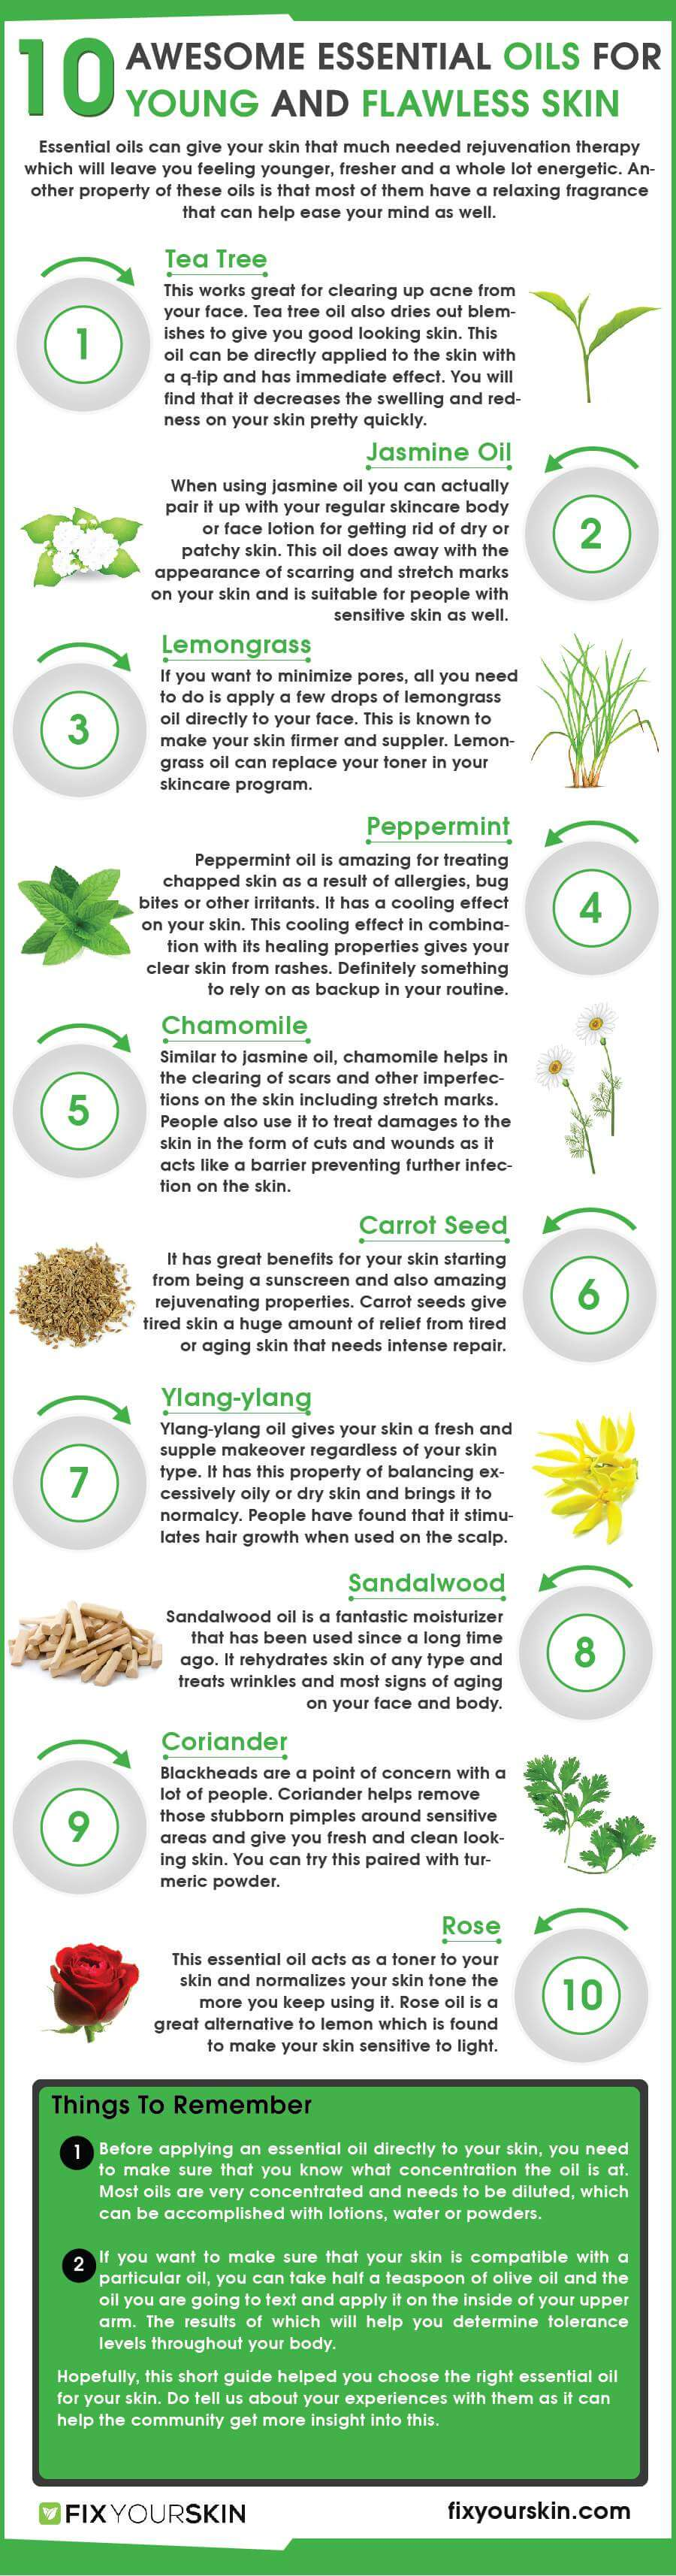 Essential-Oils-For-Flawless-Skin